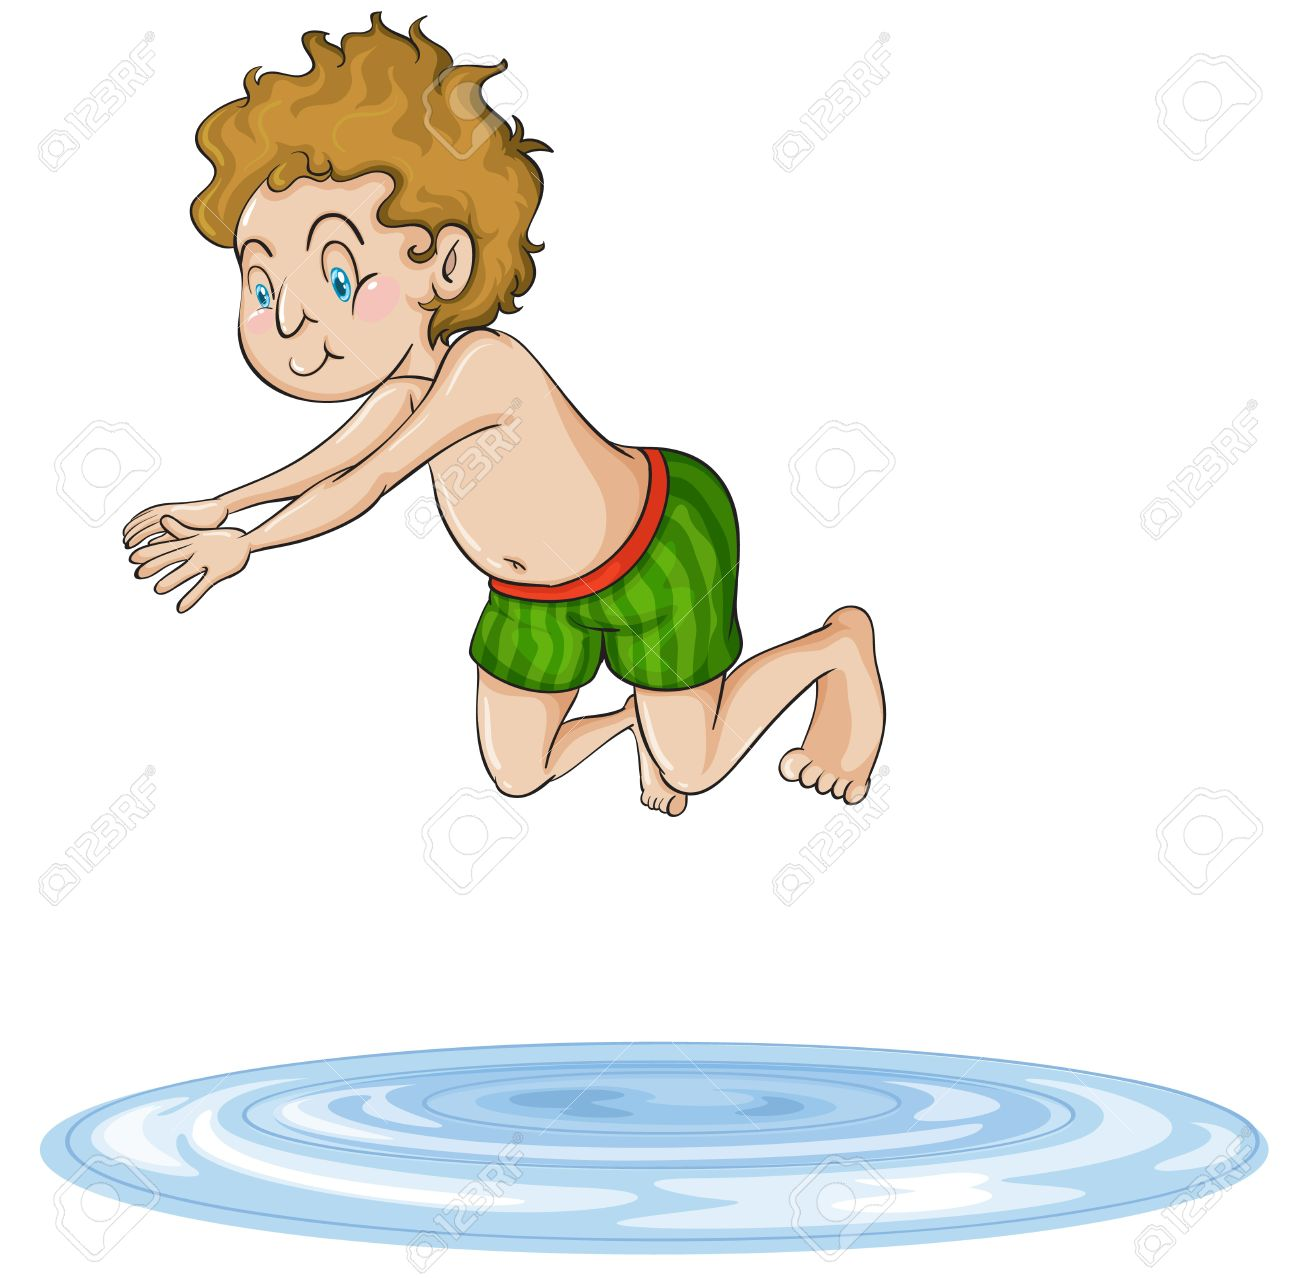 Illustration Of A Boy Diving Into Water On A White Background.